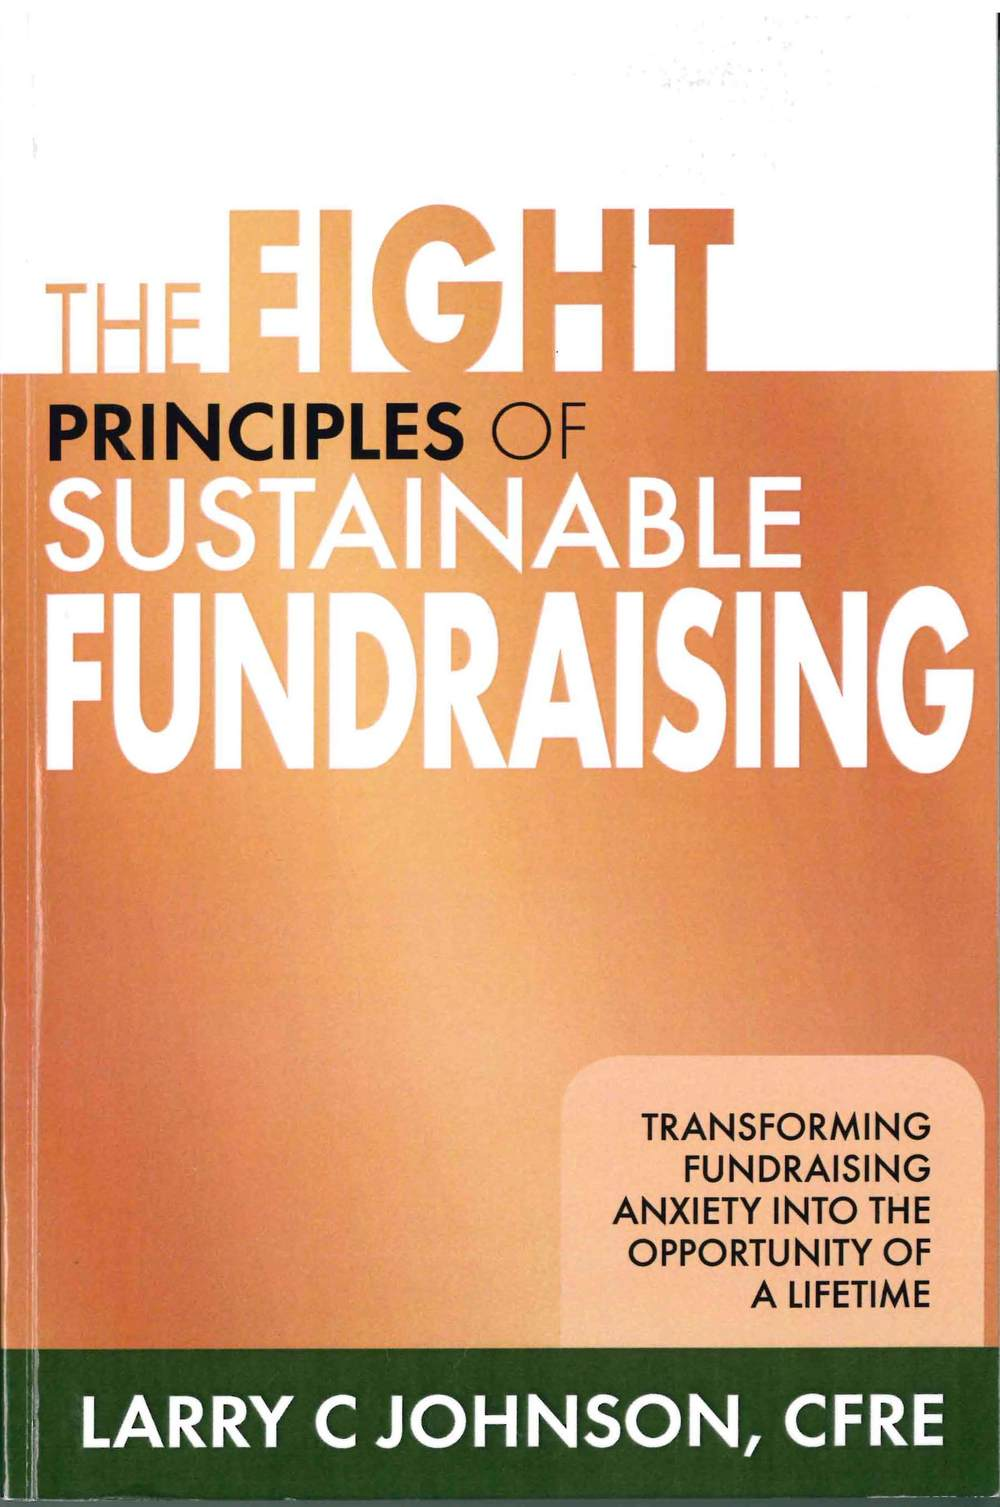 The Eight Principles of Fundraising.png